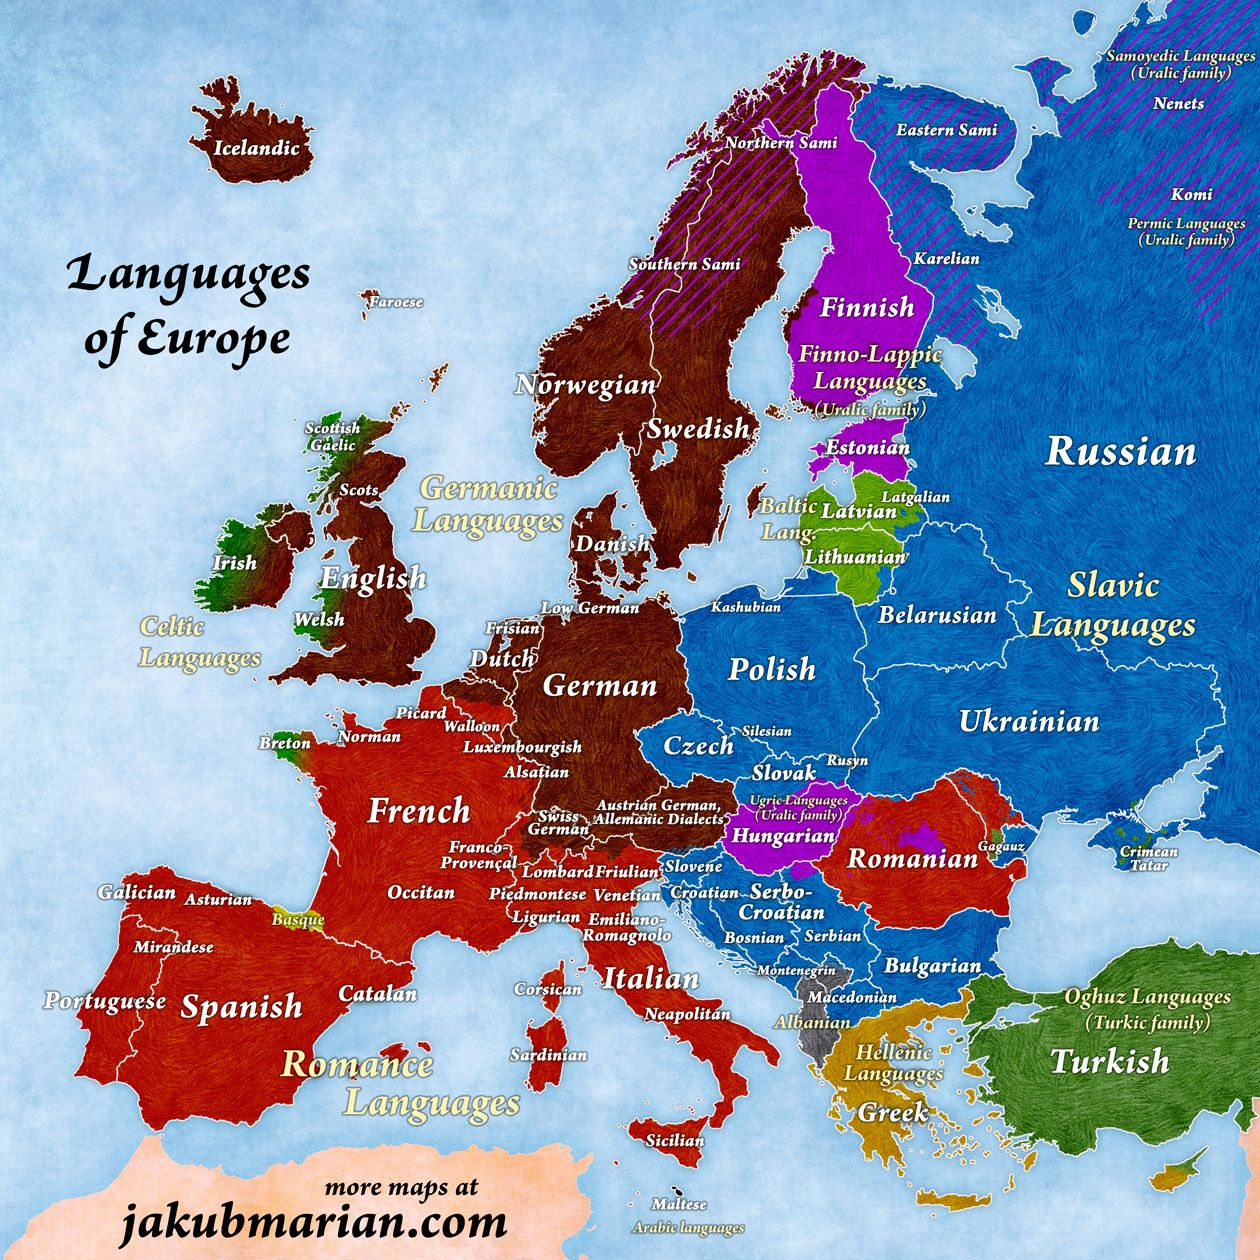 Map of languages and language families of europe jakub marian map of languages and language families of europe jakub marian sciox Image collections